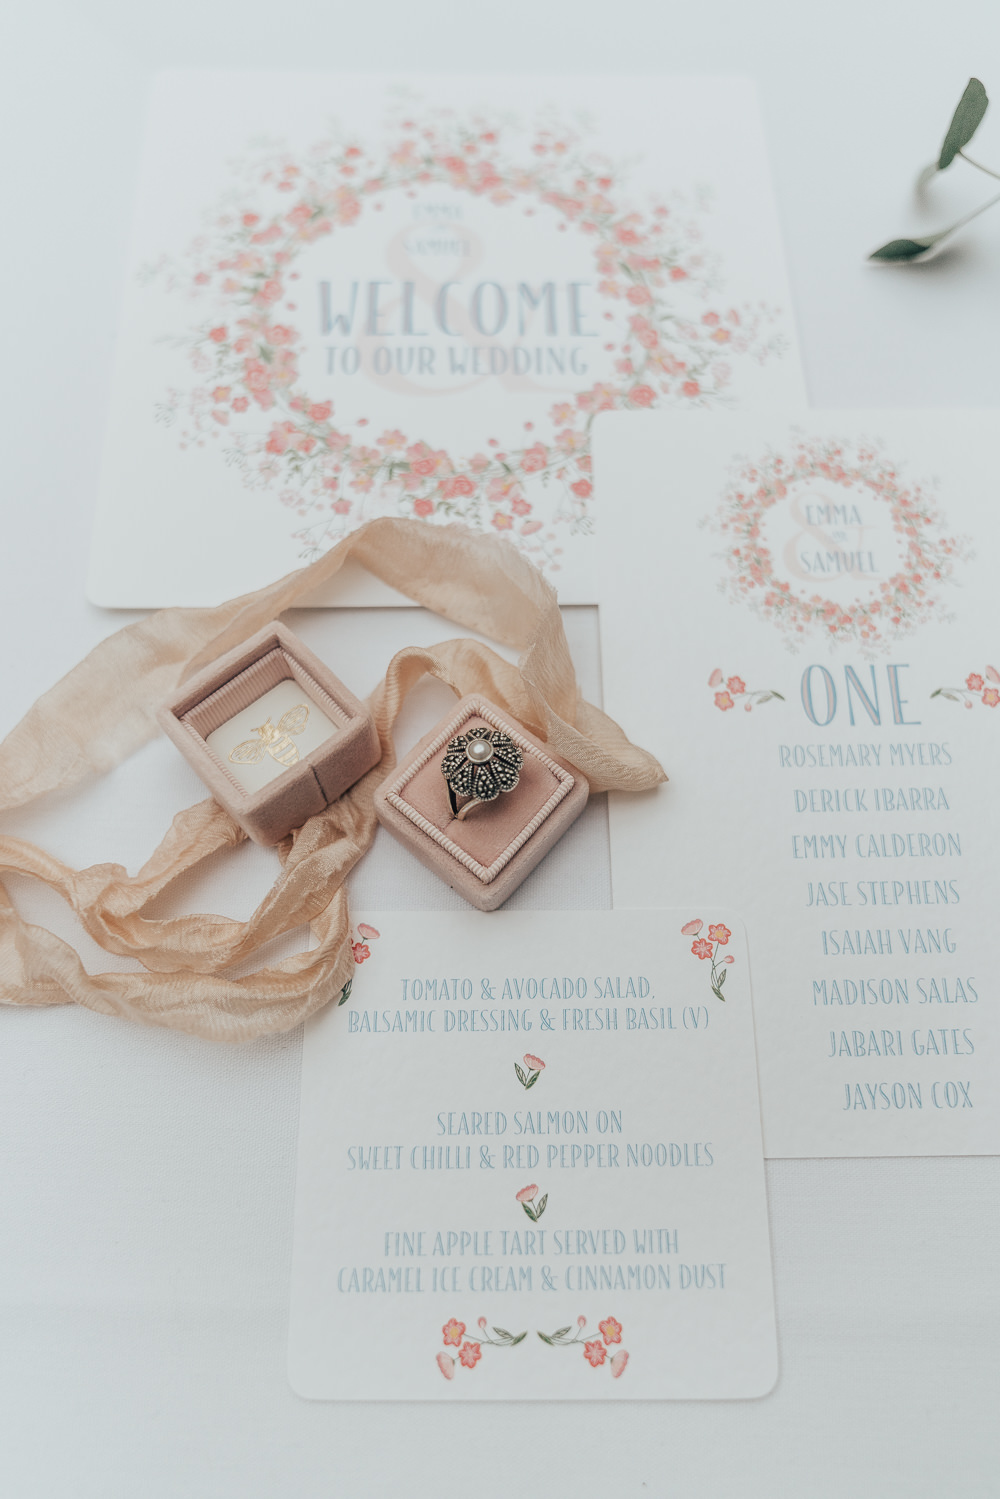 Stationery Invites Invitations Flat Lay Ribbon Flowers Floral Envelope Velvet Ring Box Hoop Wedding Ideas Rebecca Carpenter Photography